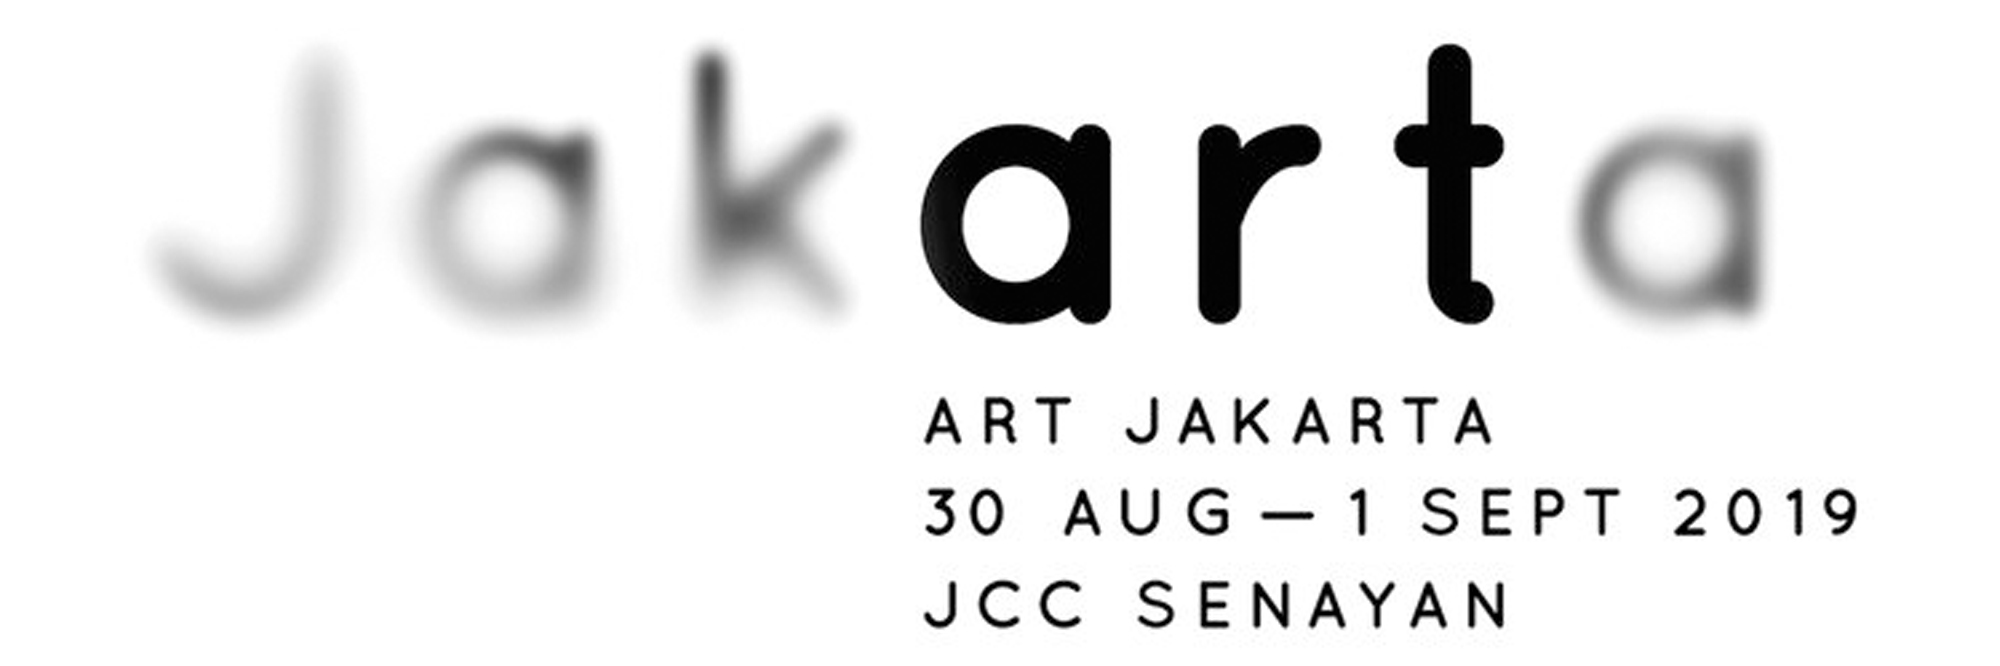 ART JAKARTA FAIR   | Mella Jaarsma, Aliansyah Caniago | August 29 - September 1, 2019